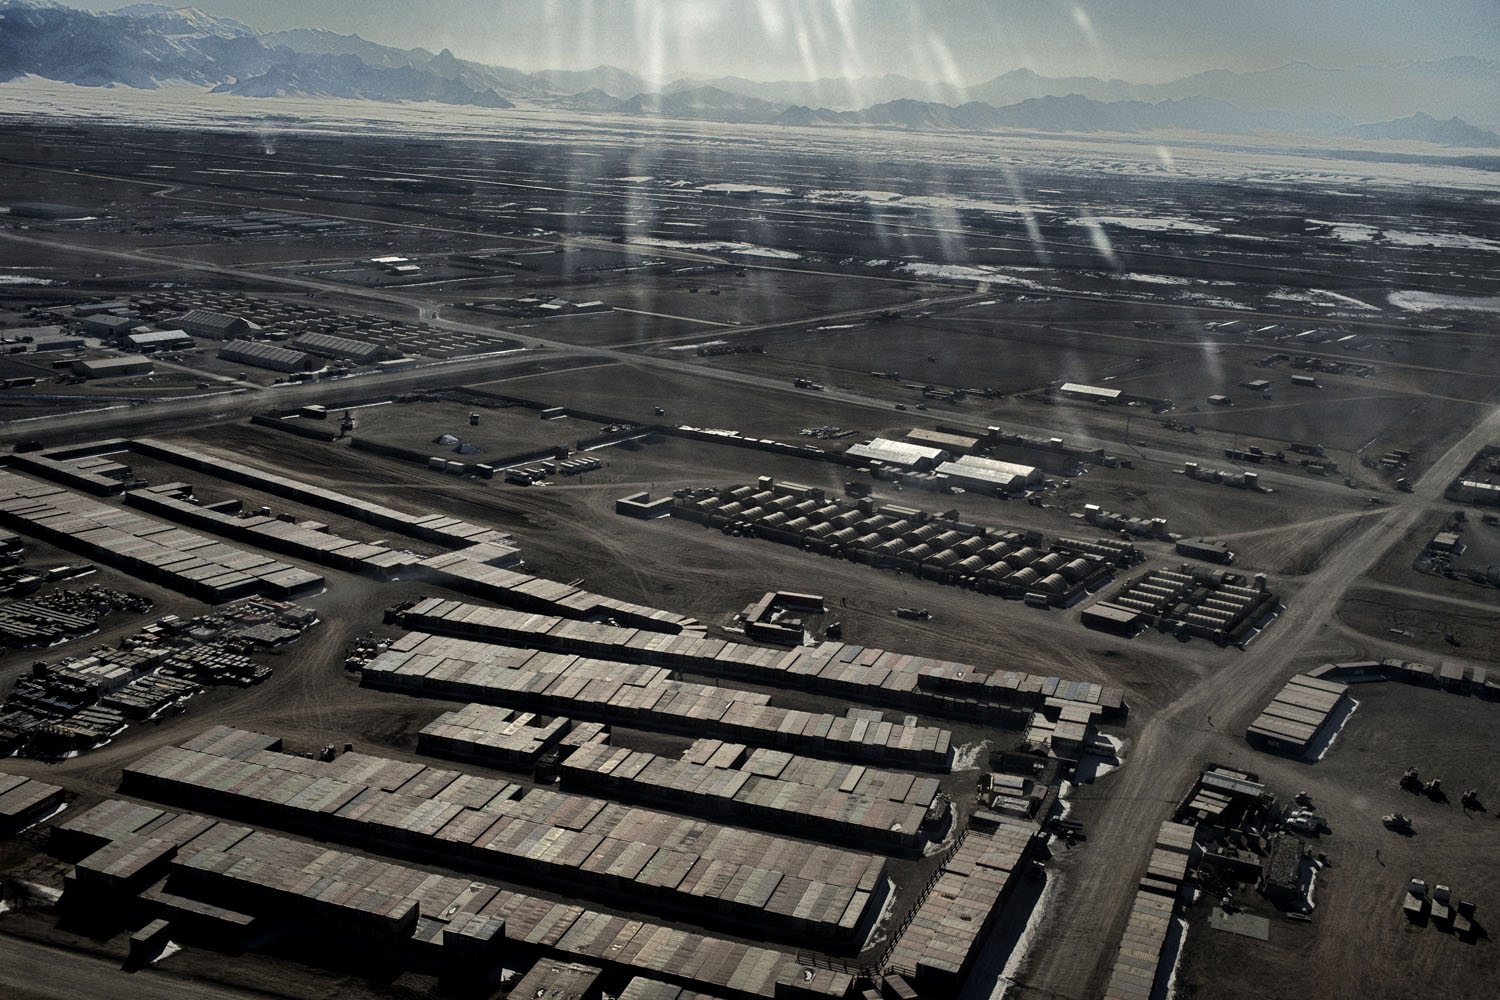 Hundreds of containers full of equipment are stacked in the yards of Forward Operating Base Shank, the logistical hub for American operations in Logar Province.